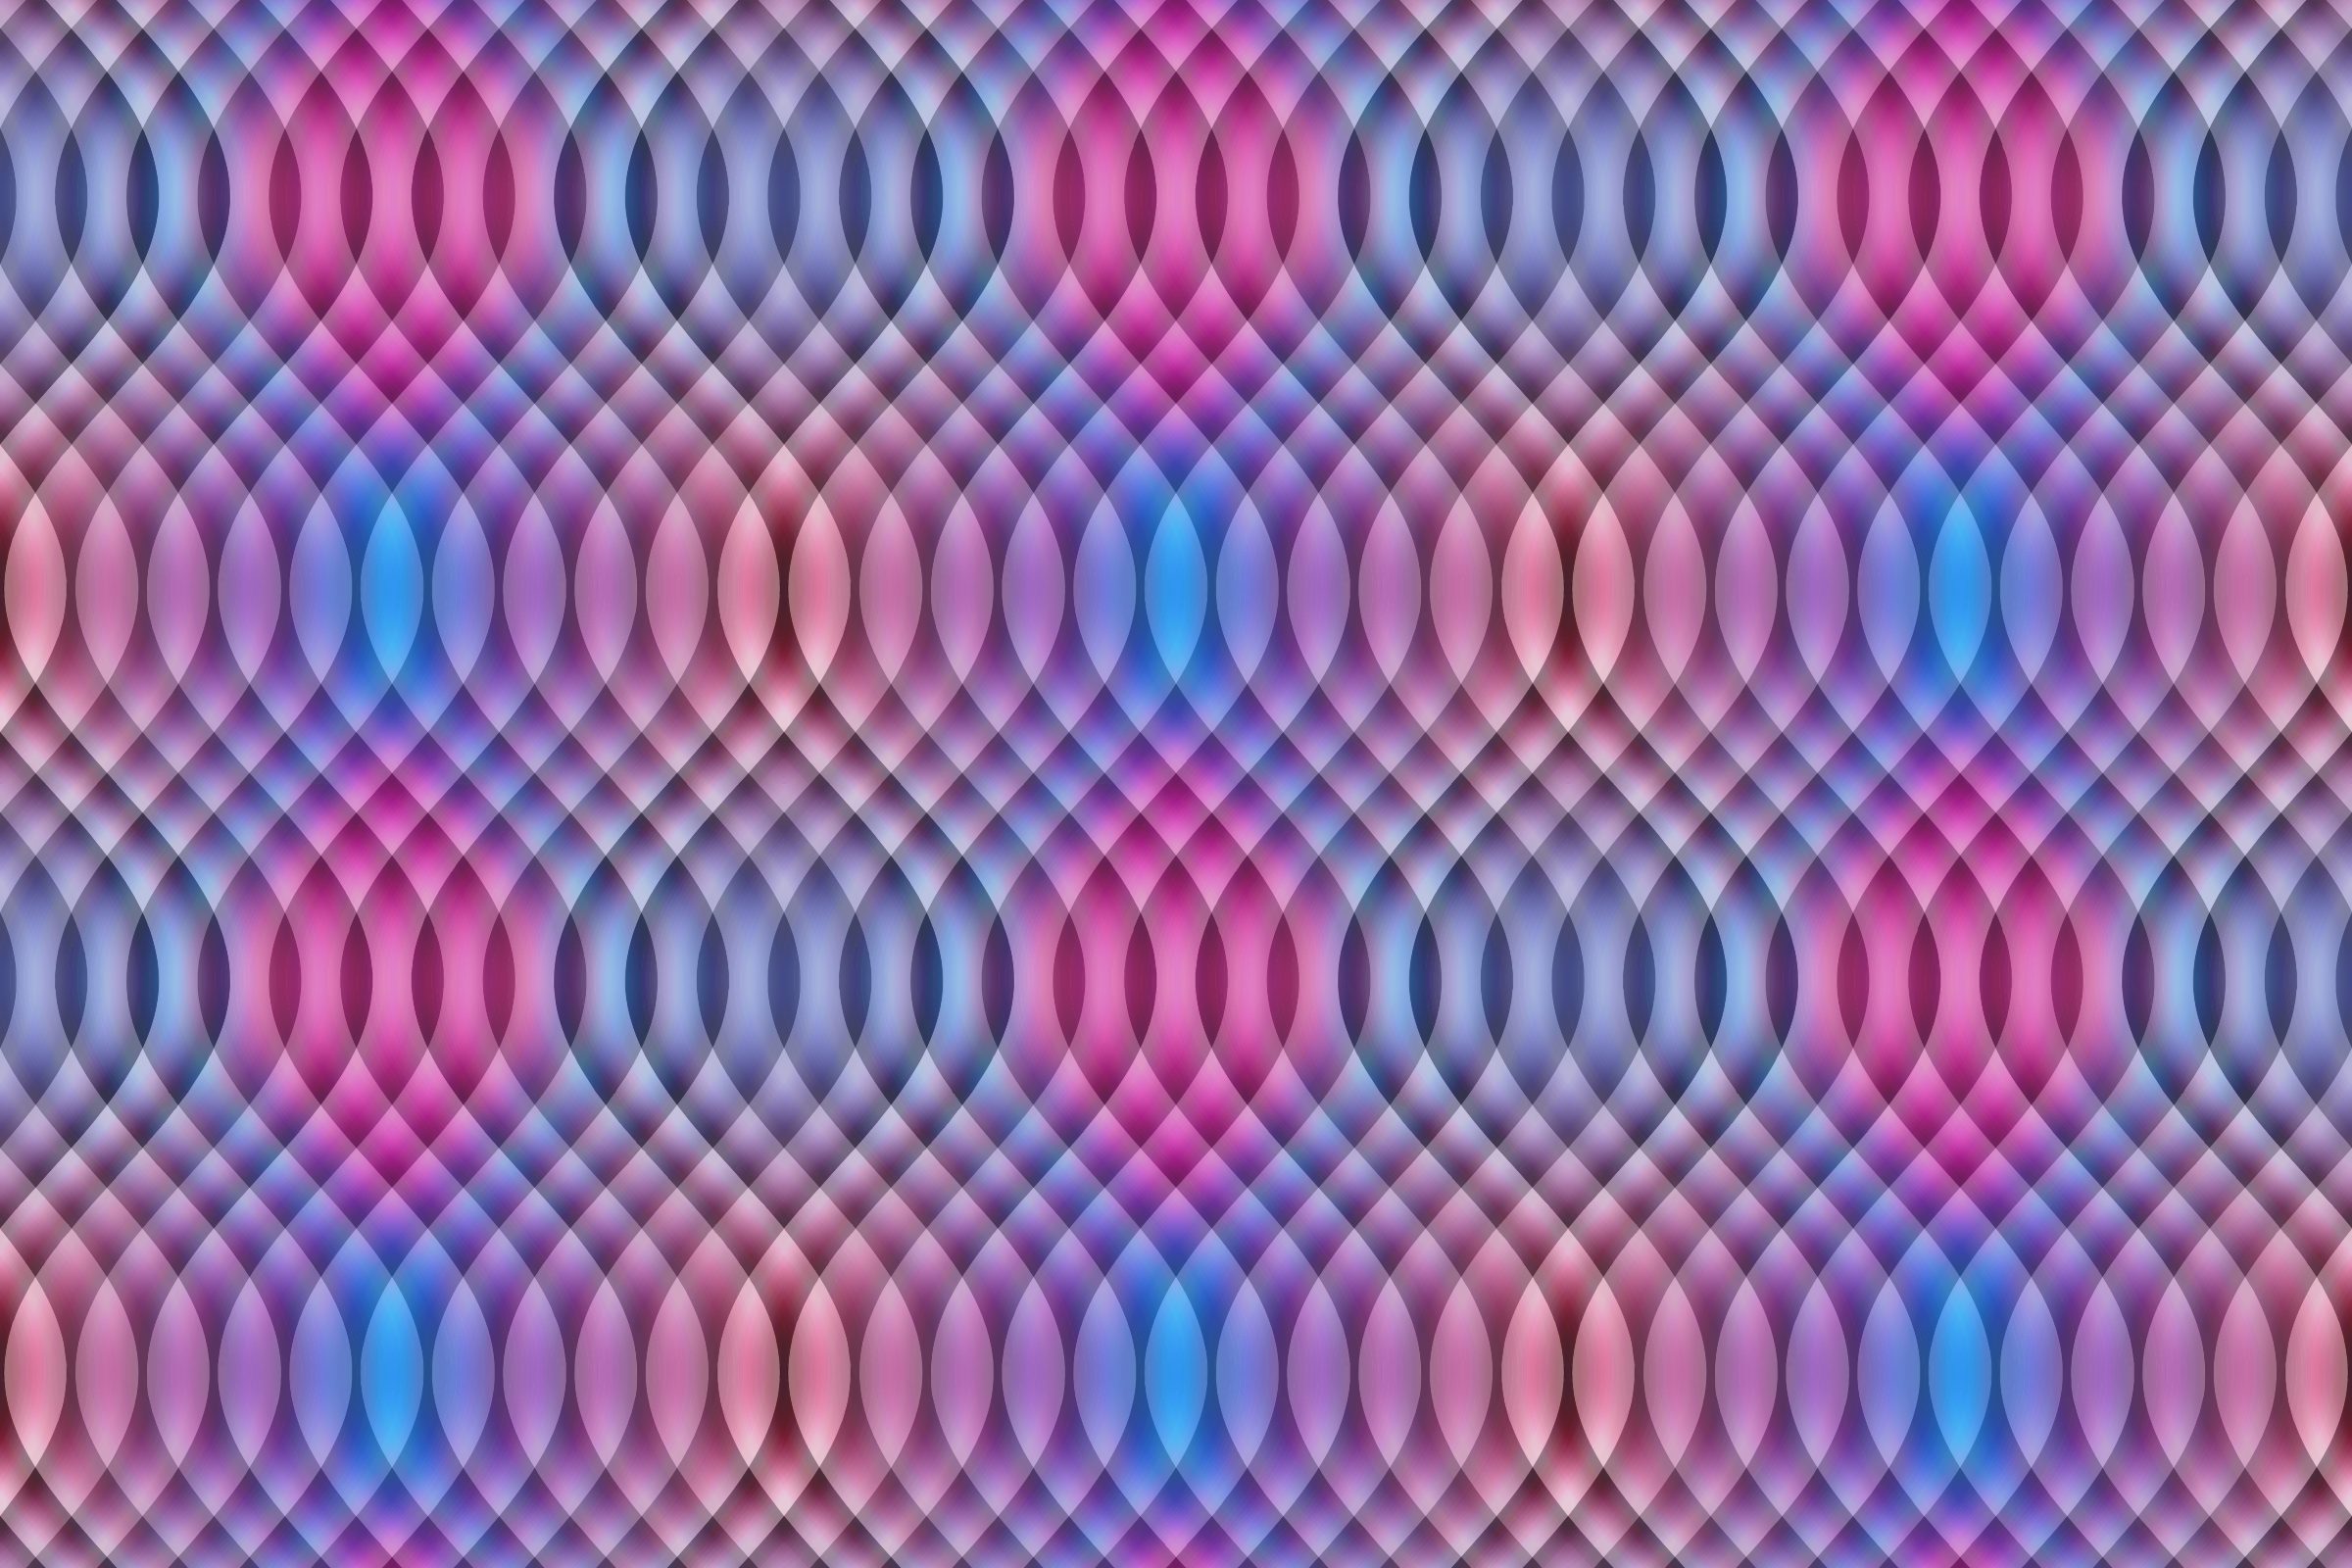 Wavy background 9 (colour 3) by Firkin